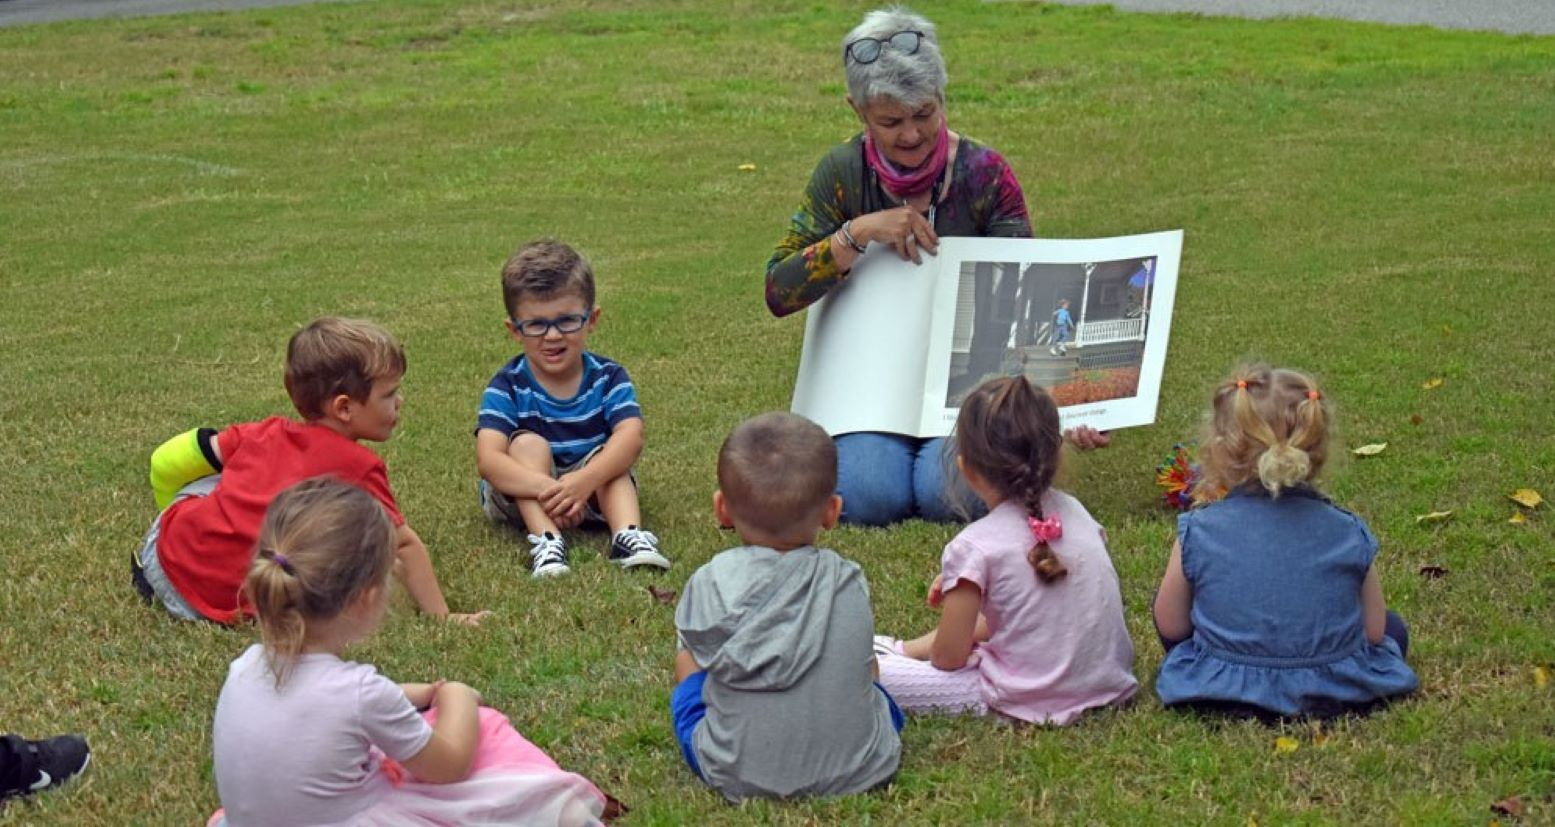 Preschool students at story time